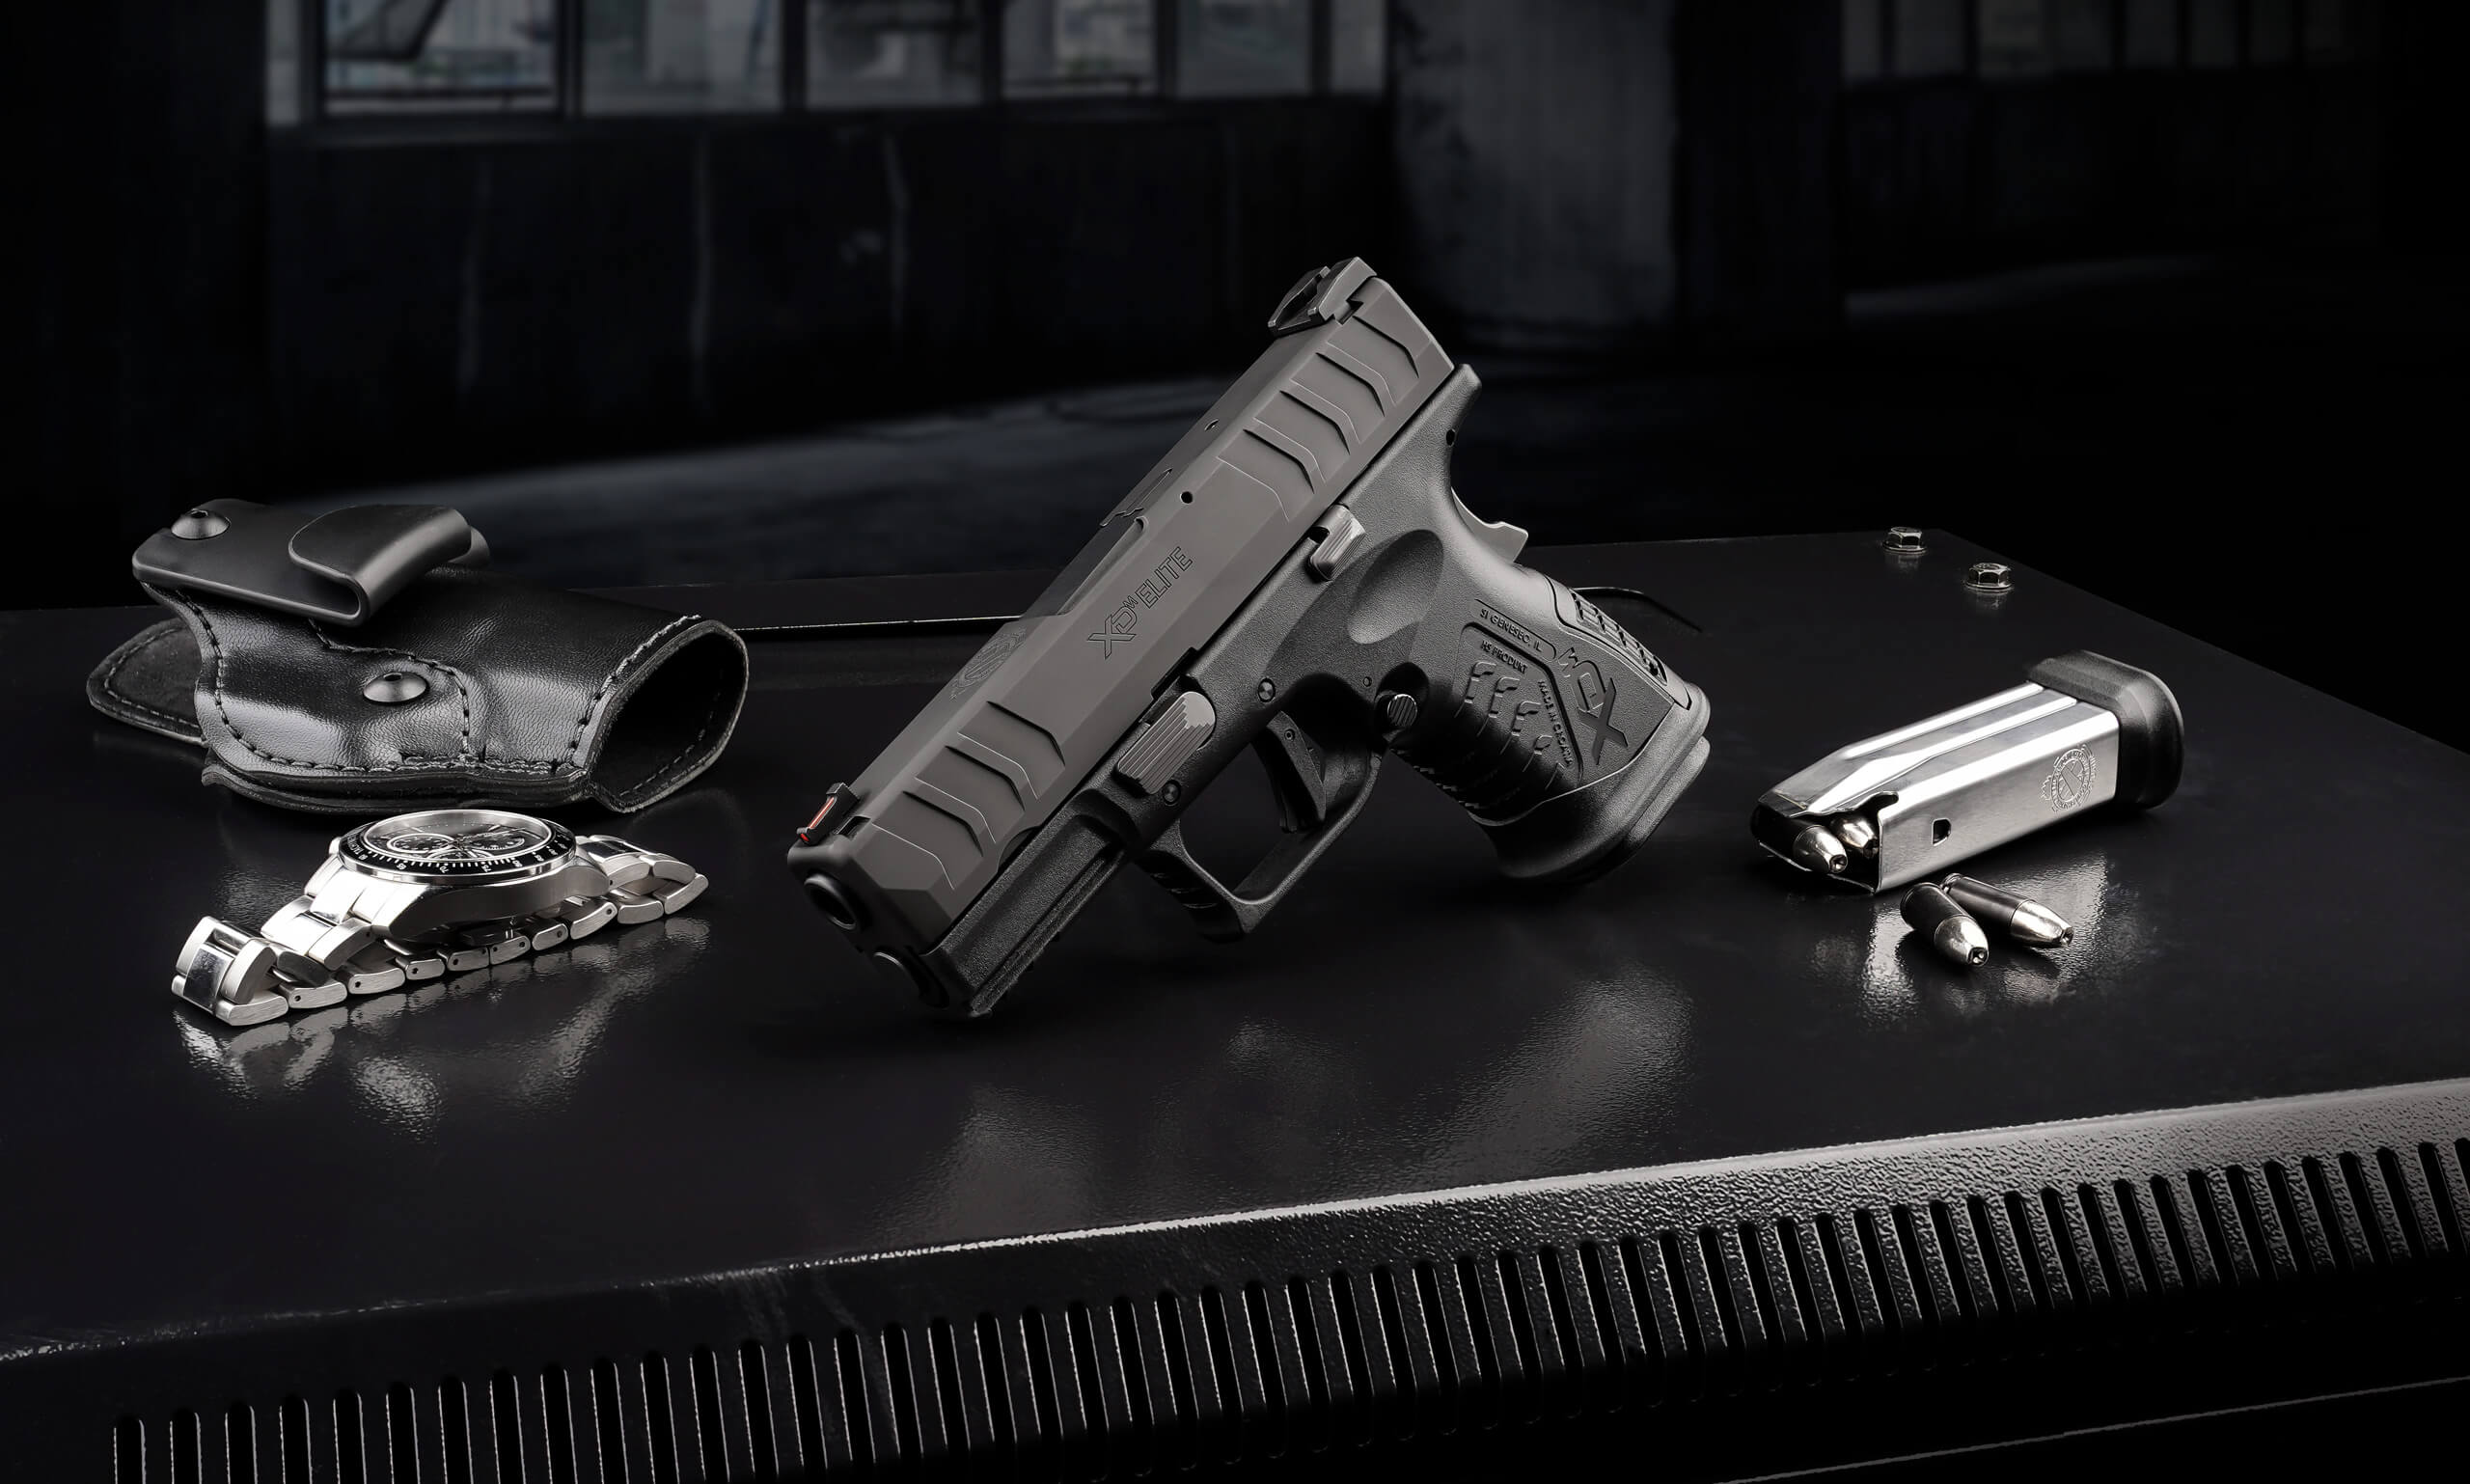 Springfield's Elite XD-M Goes Compact for Everyday Carry with 9mm 3.8